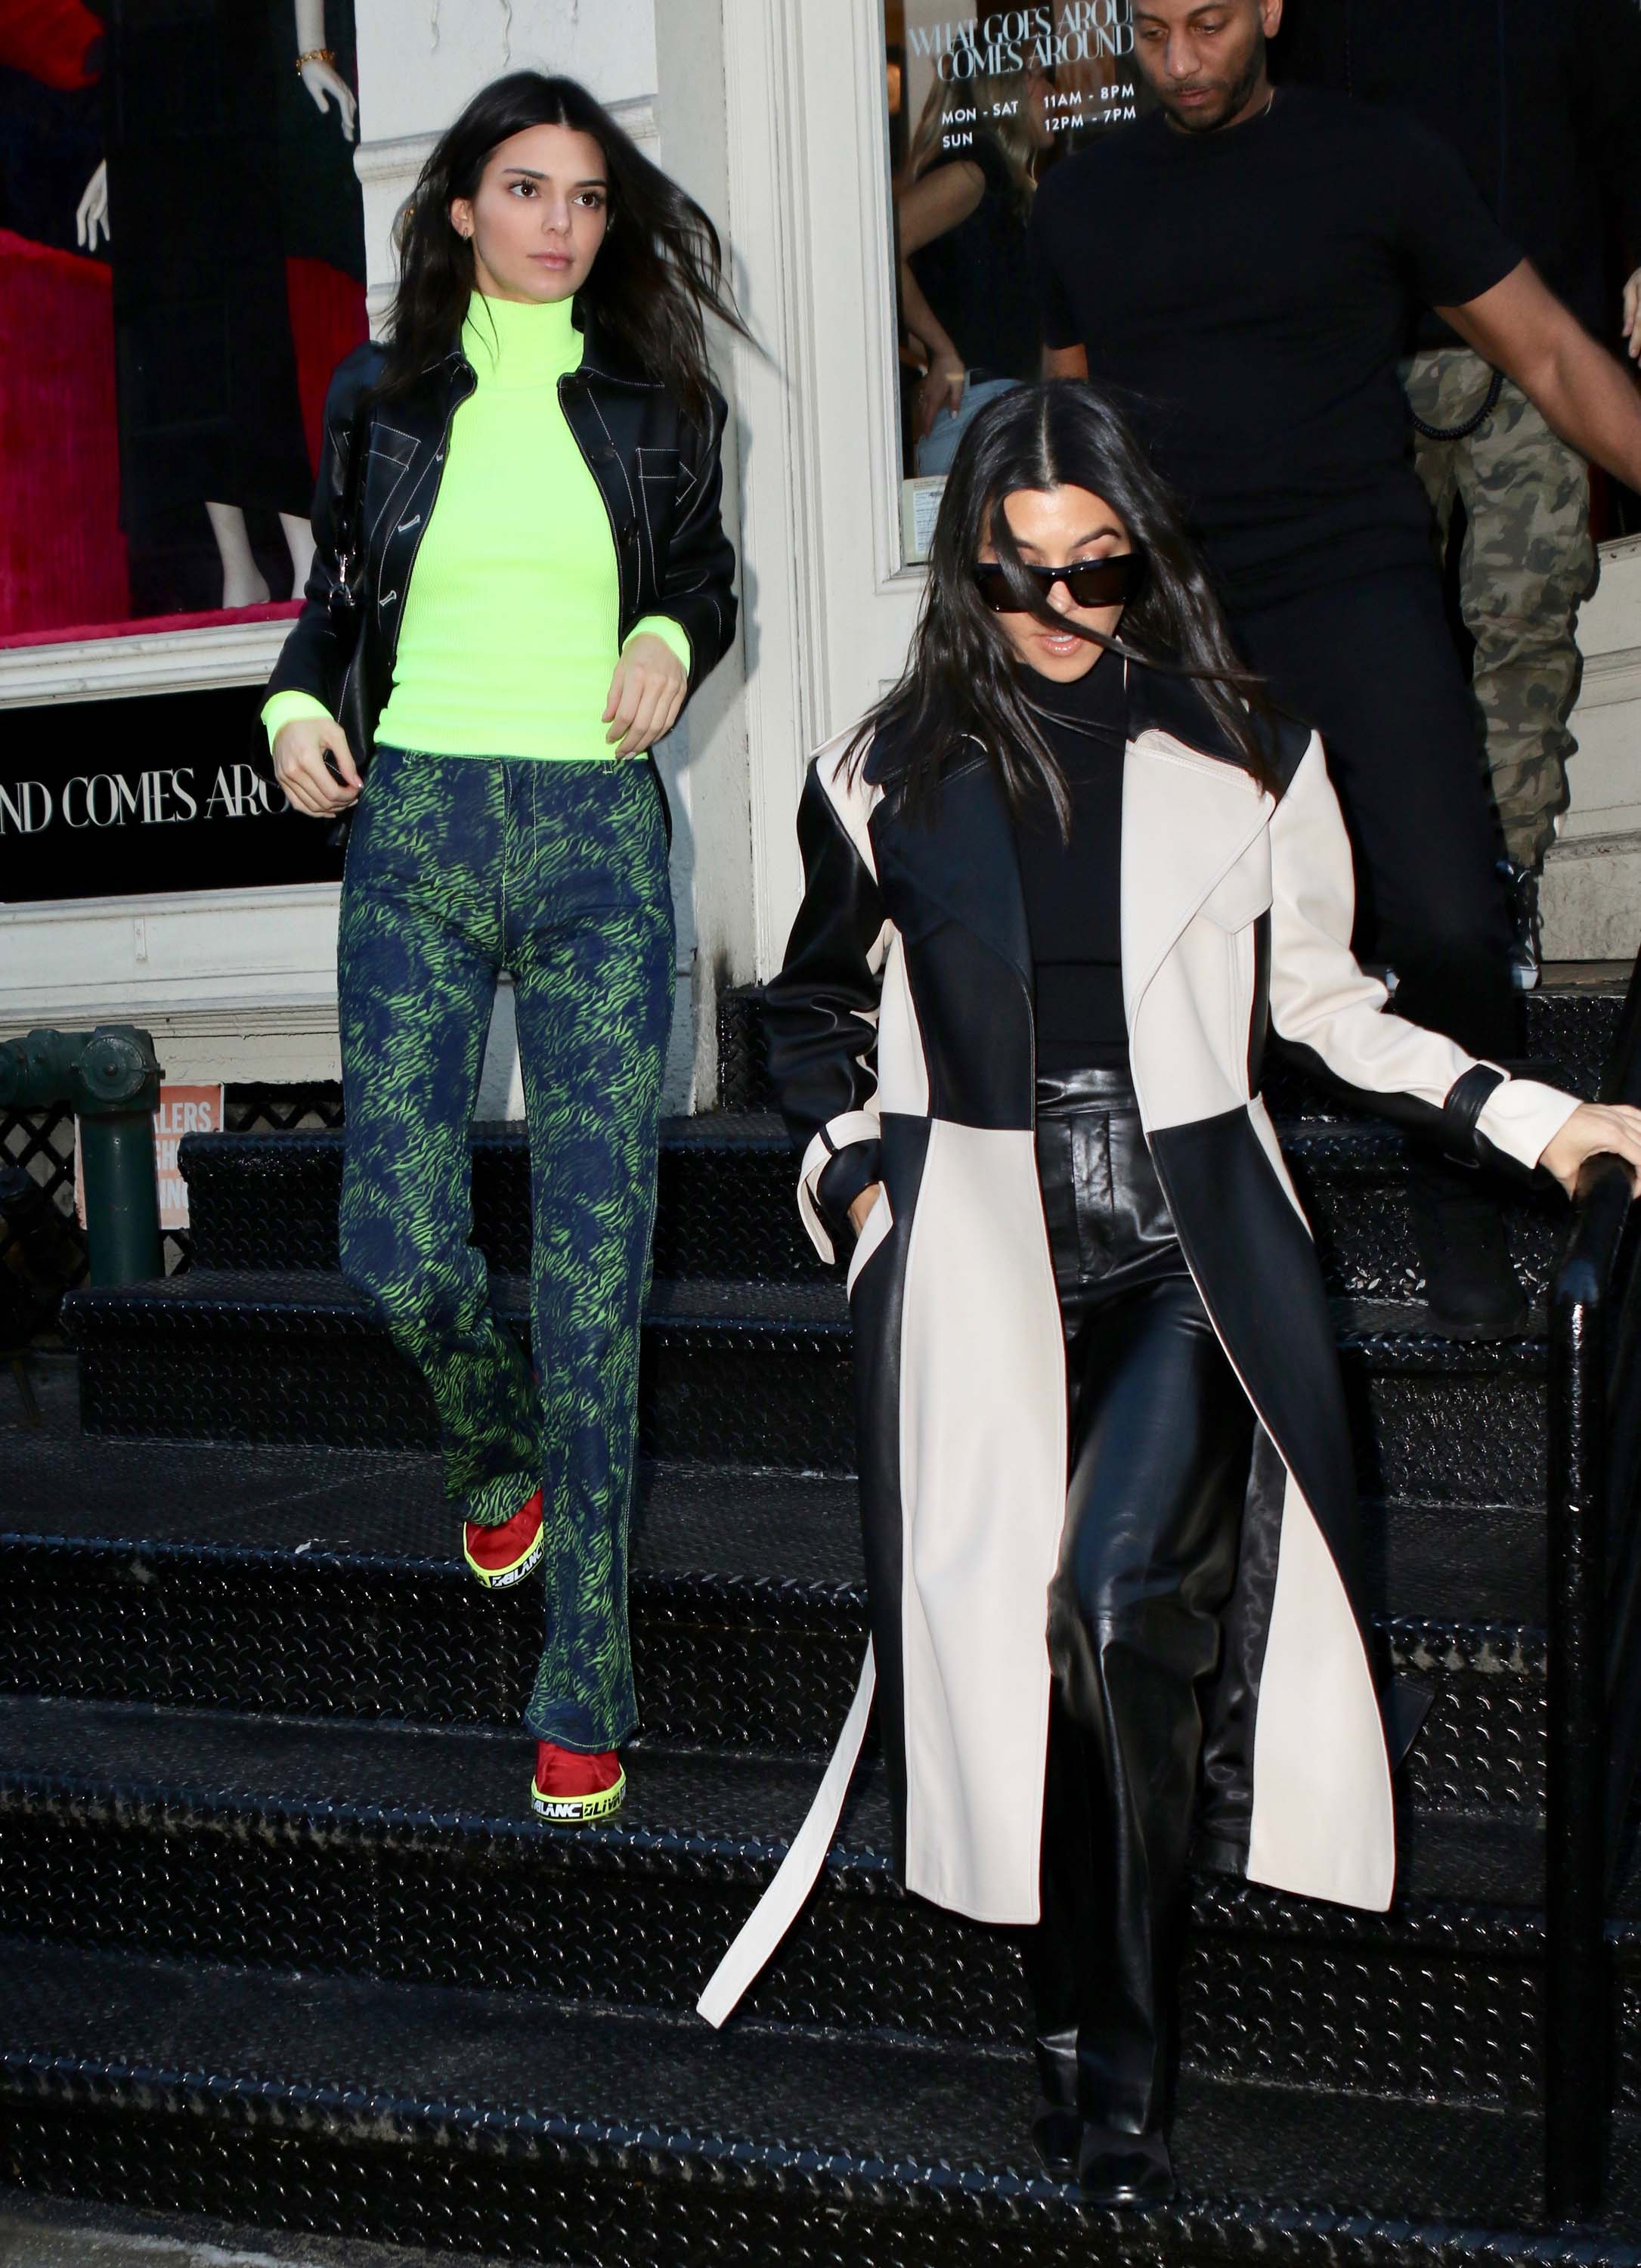 Kendall Jenner & Kourtney Kardashian spend the afternoon shopping